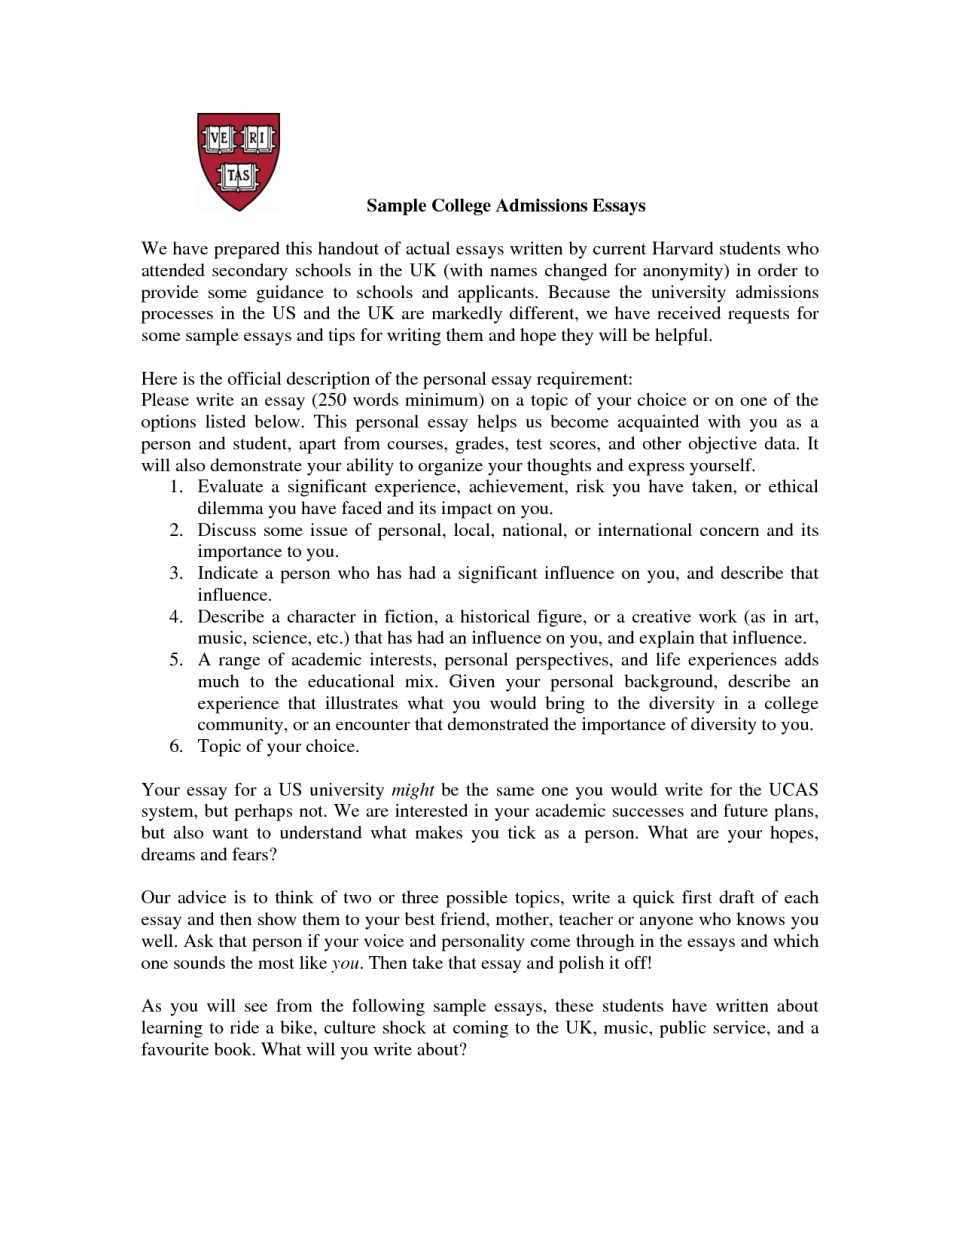 003 Iafr4c5bwr Essay Example Harvard Essays That Staggering Worked University Common App Business School 960